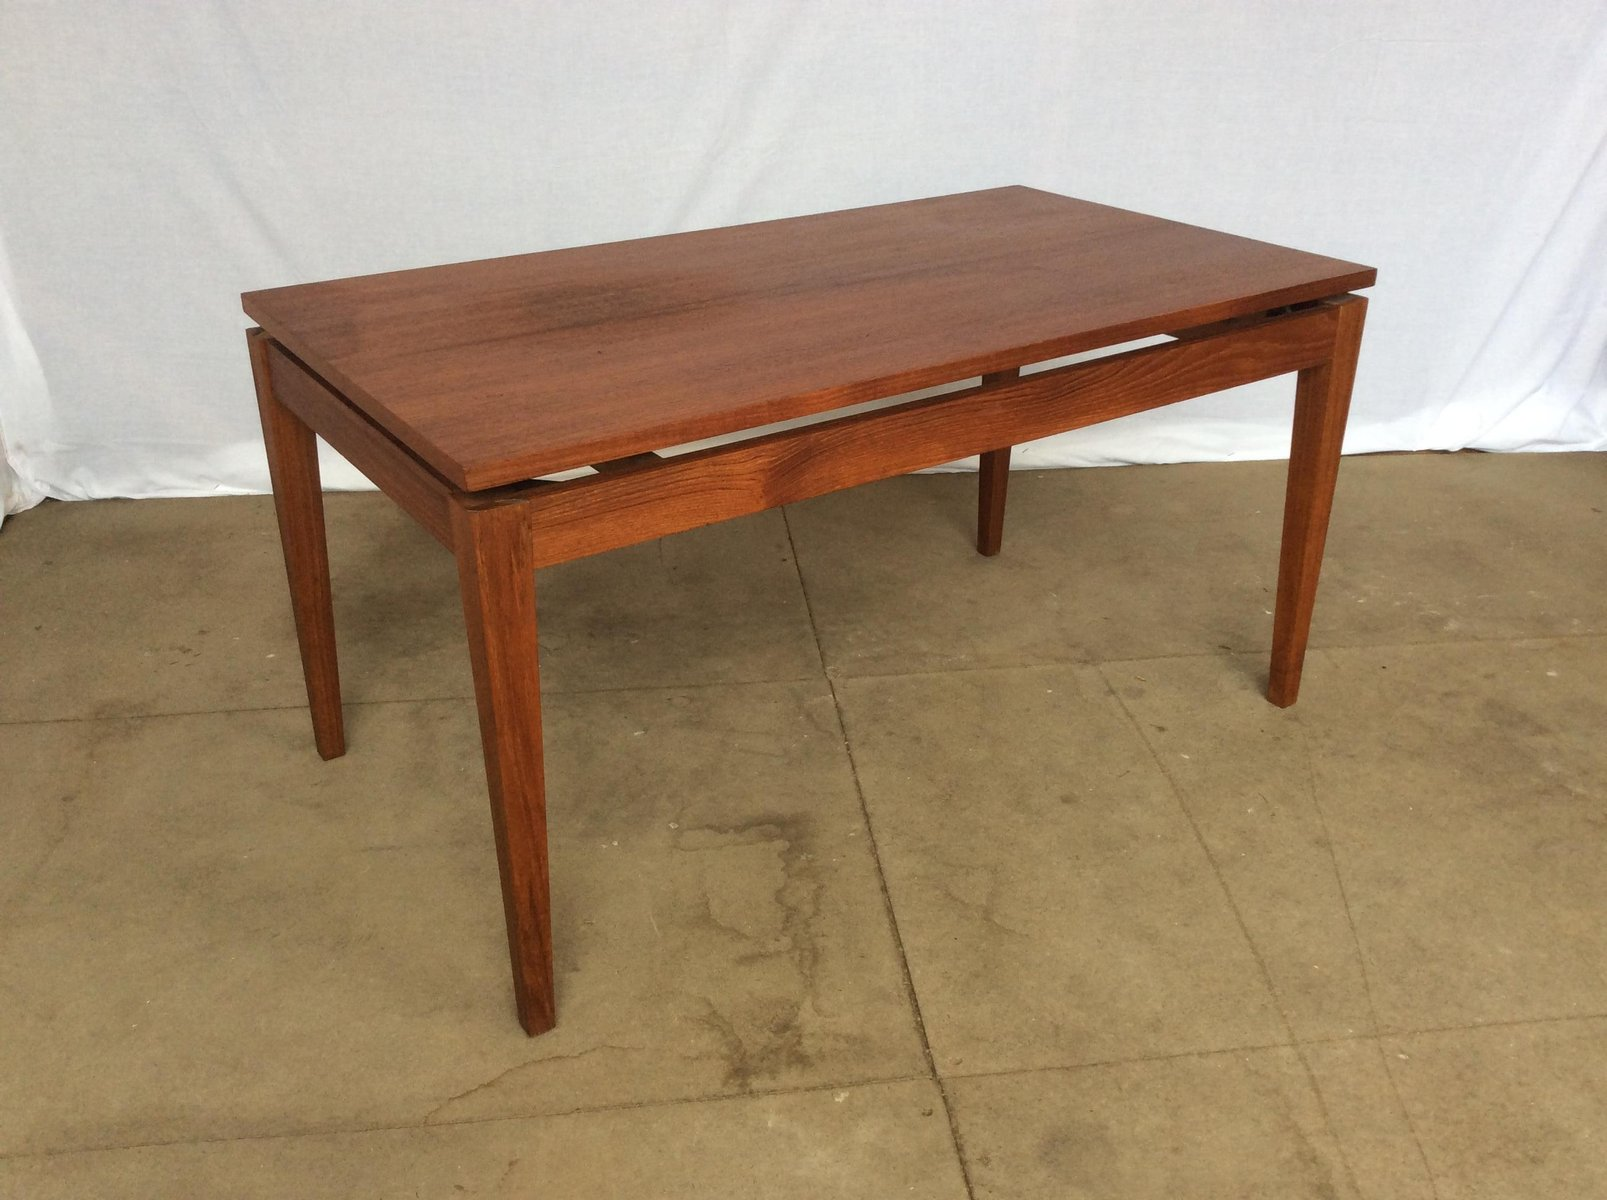 Teak floating top coffee table 1970s for sale at pamono teak floating top coffee table 1970s geotapseo Gallery